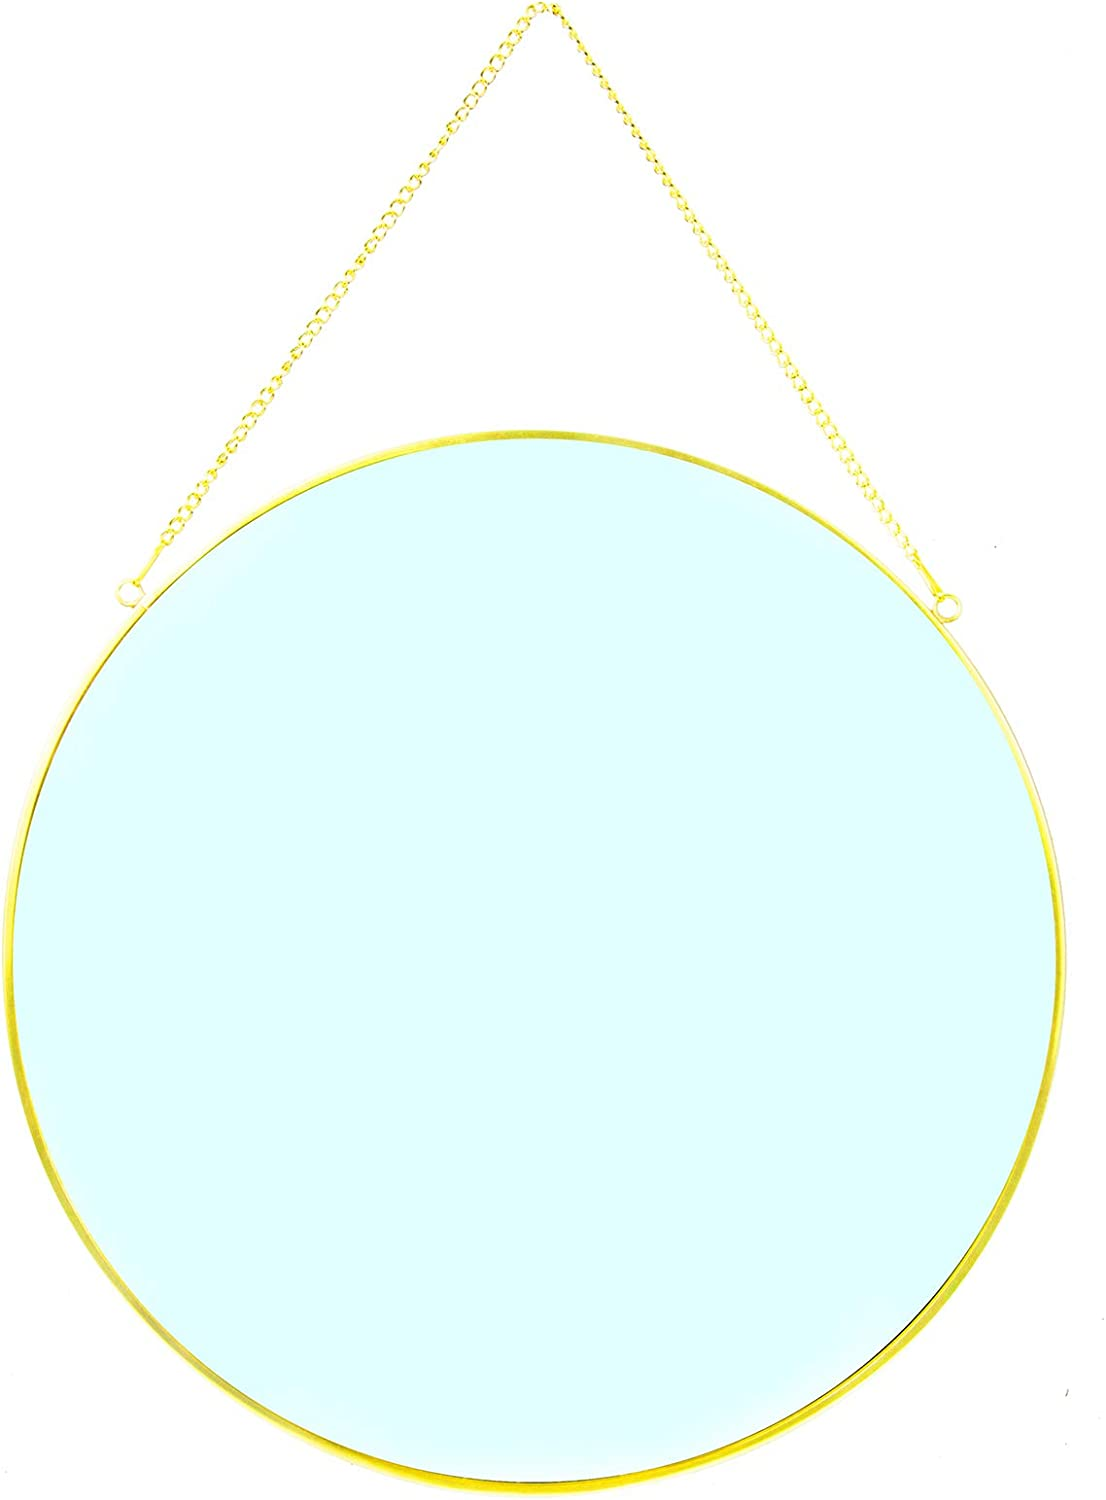 """CoolXuan Round Hanging Mirror for Wall Gold 13.78"""" Circle Mirror with Chain Wall Mounted for Minimalist Home Decor (Round, L,Golden, 13.78"""" x 13.78"""")"""